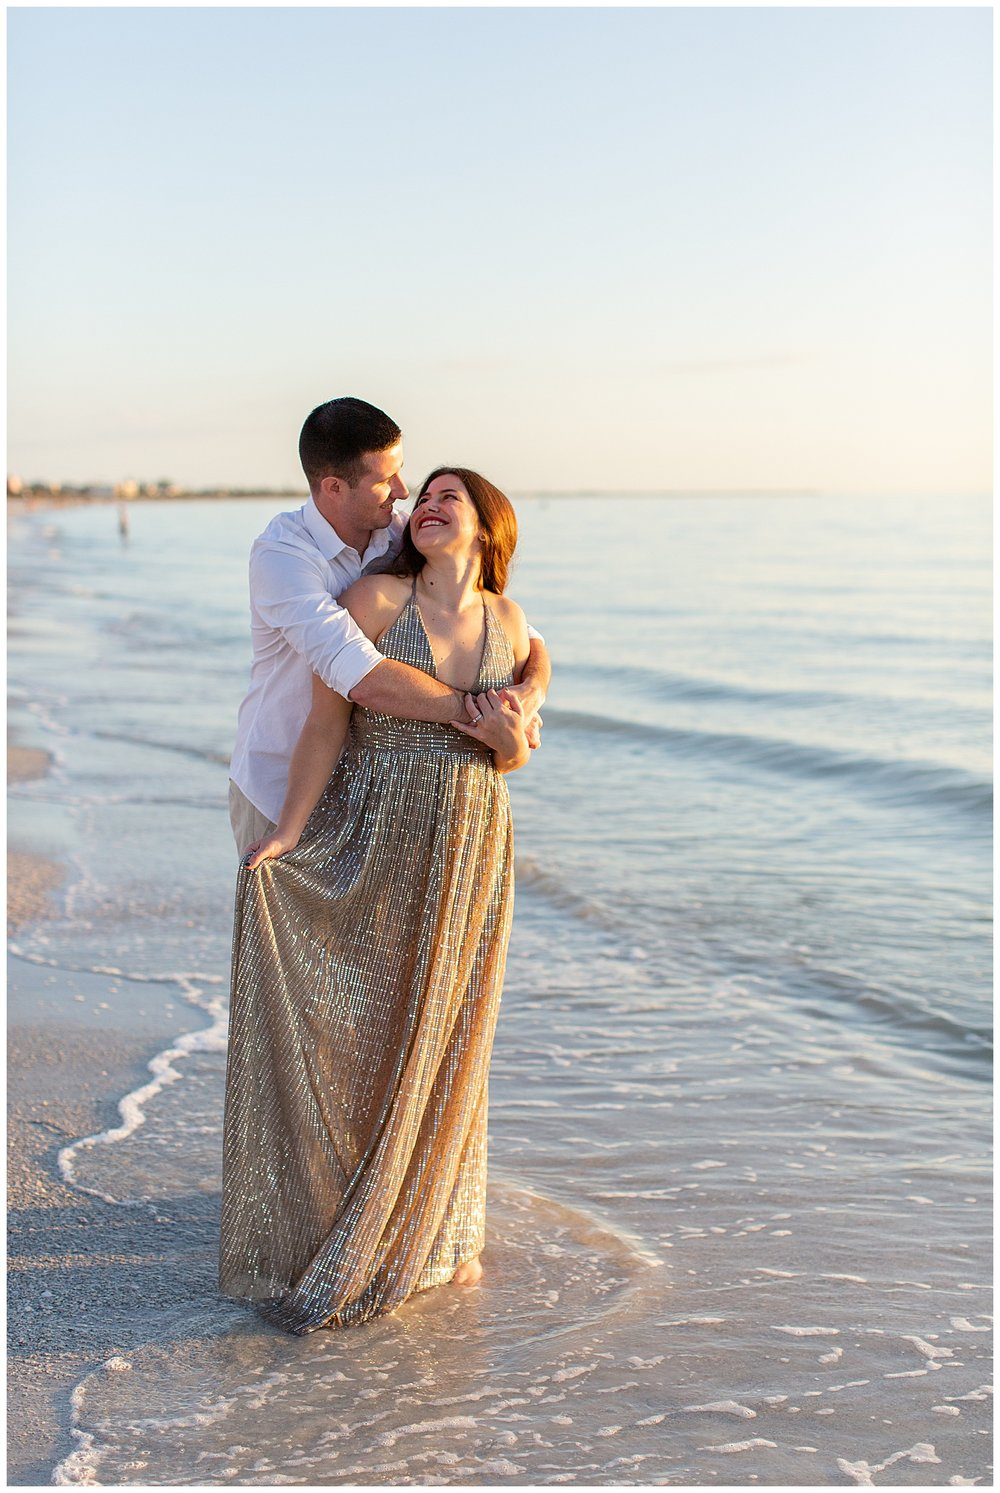 emily-belson-photography-florida-engagement-31.jpg